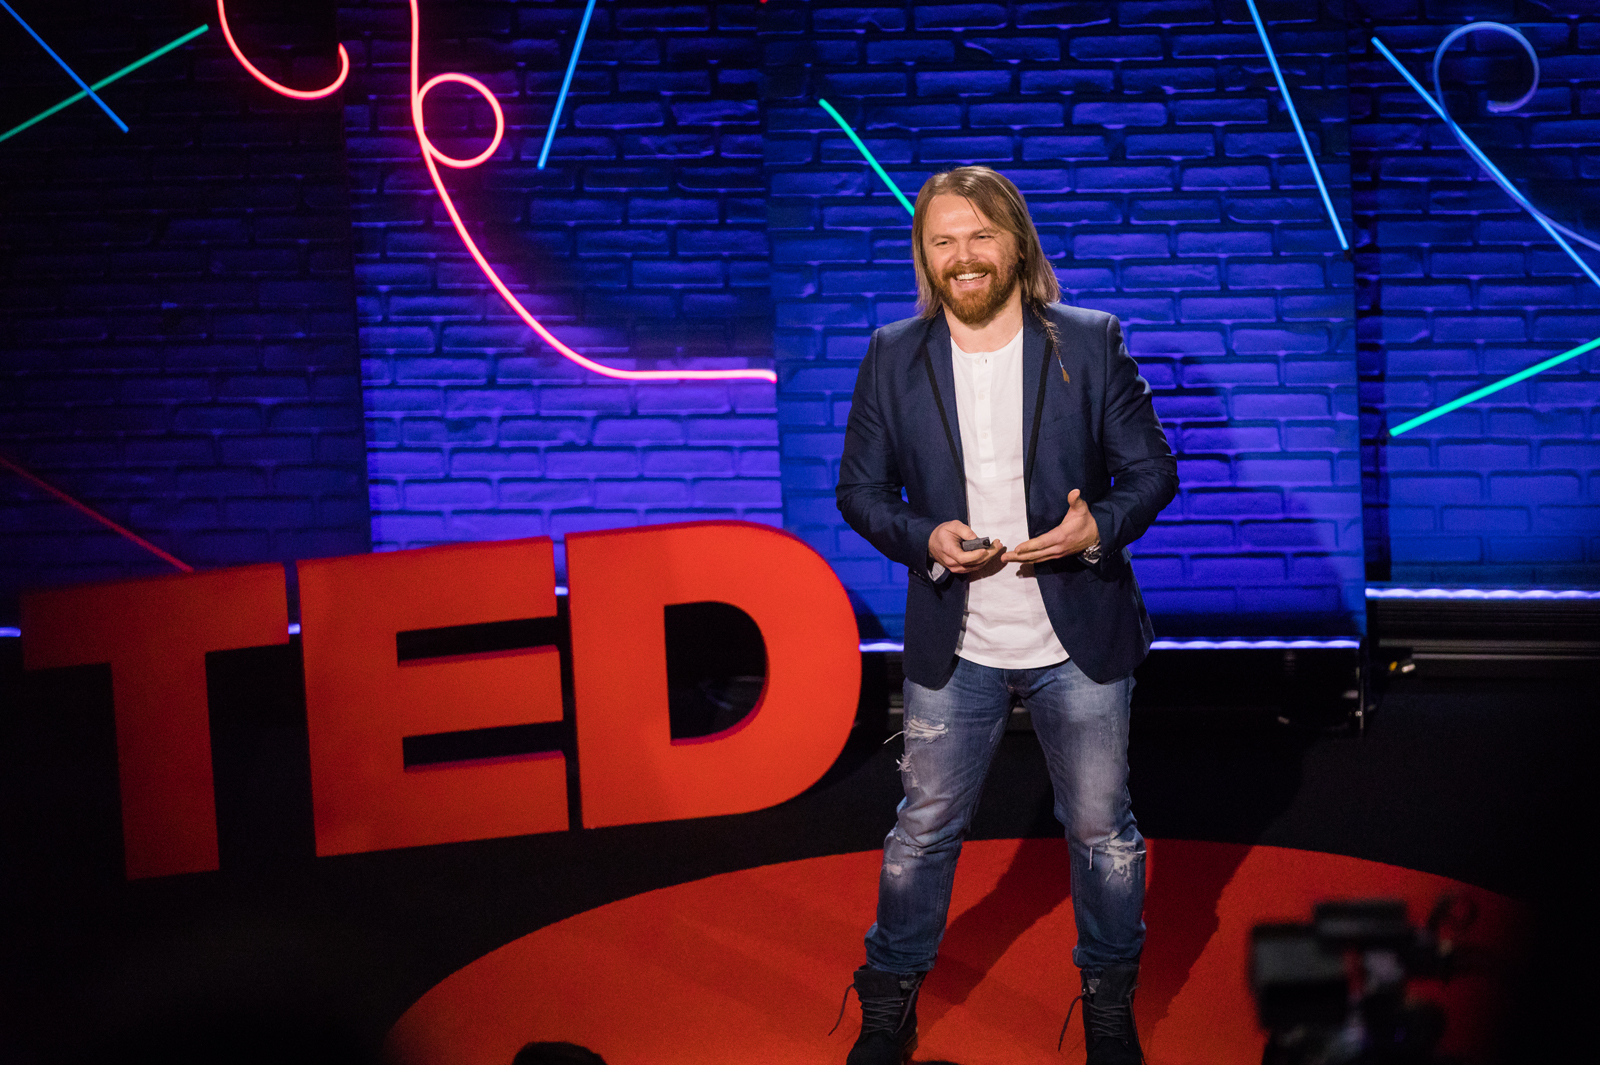 Evgeny Chereshnev speaks at TED Talent Search 2017 - Ideas Search, January 26, 2017, New York, NY. Photo: Anyssa Samari / TED